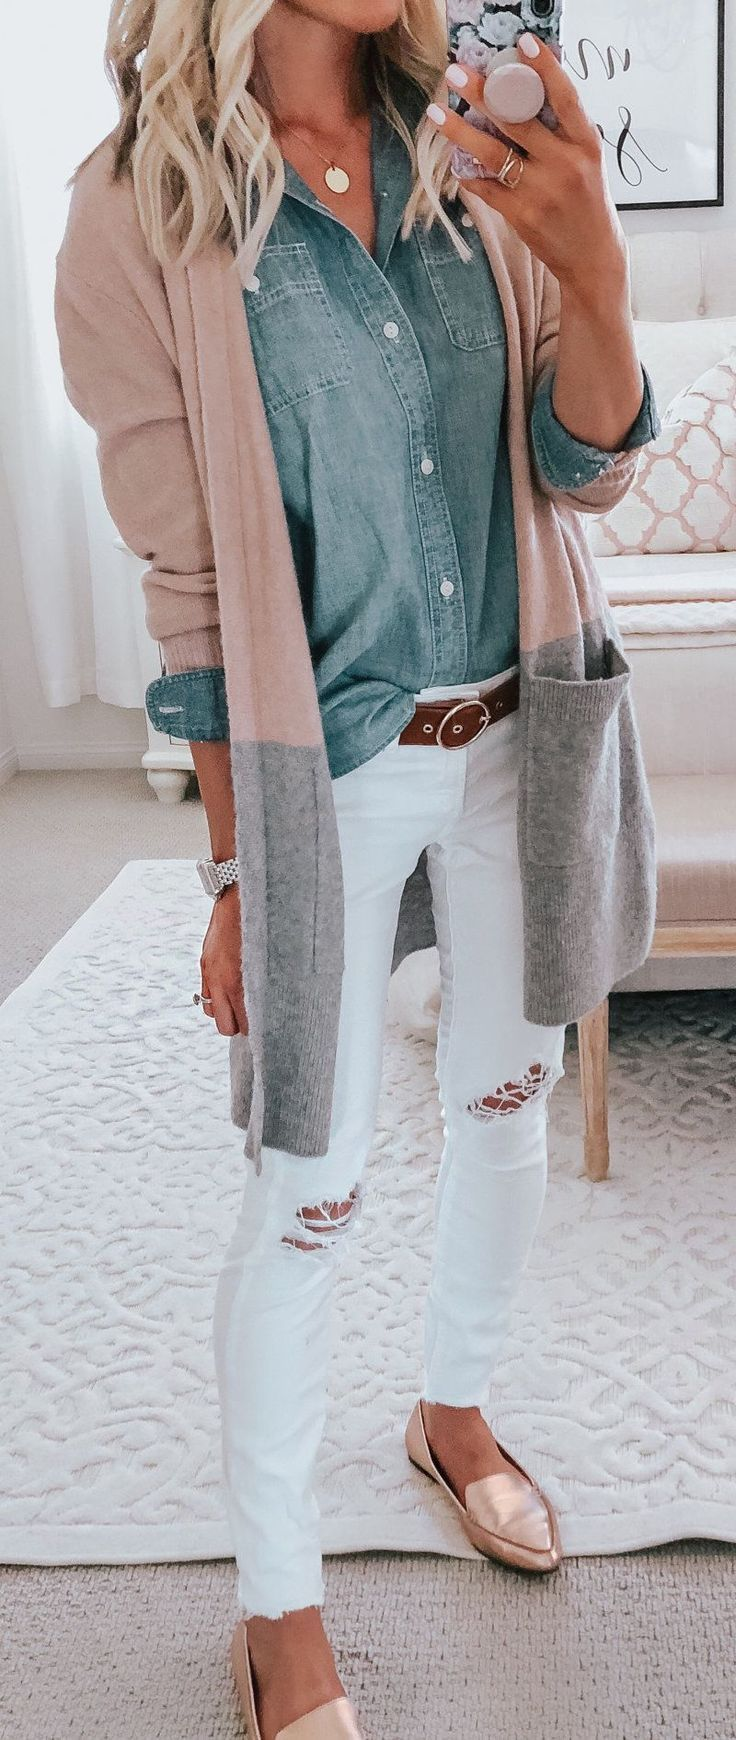 Fall Outfits With Long Cardigans 1